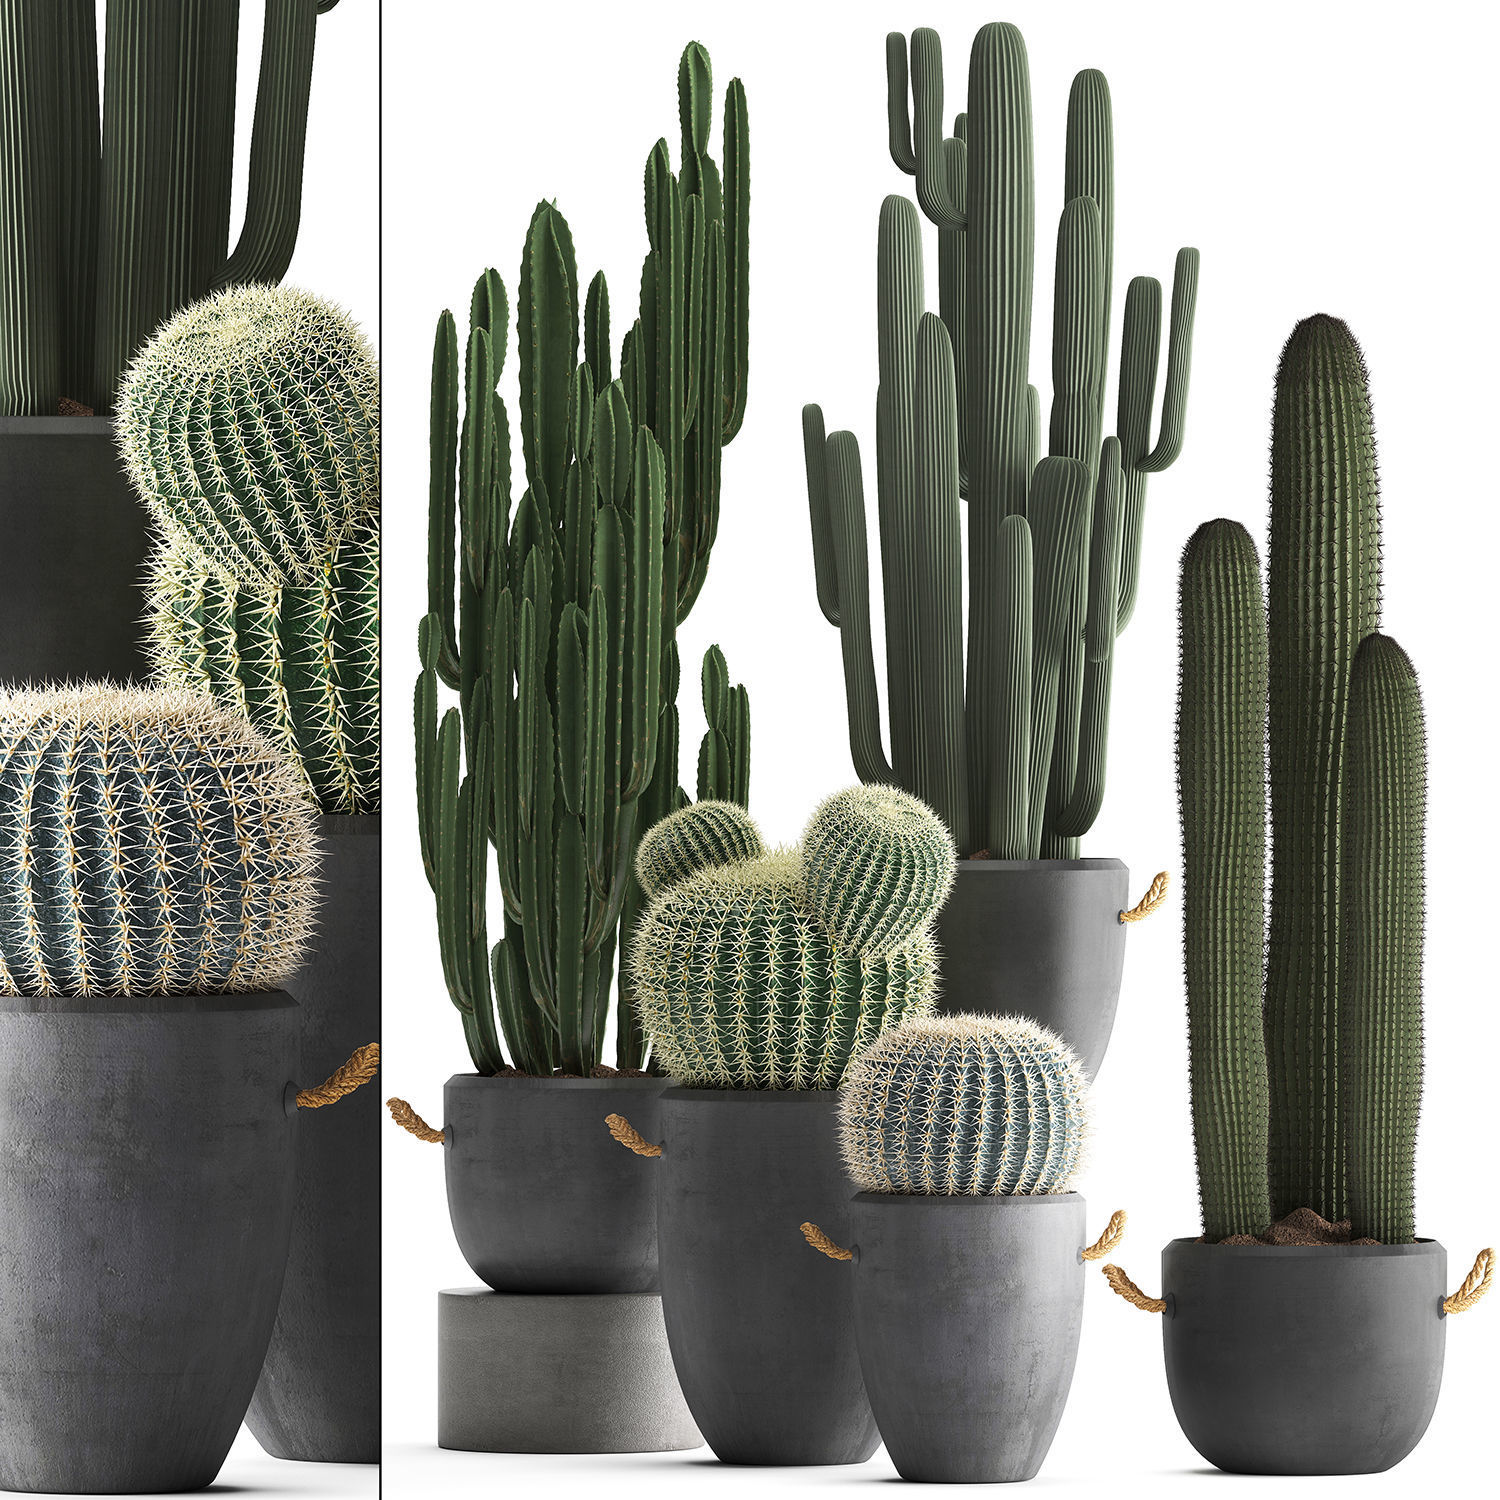 Collection of Exotic Cactus Plants 411